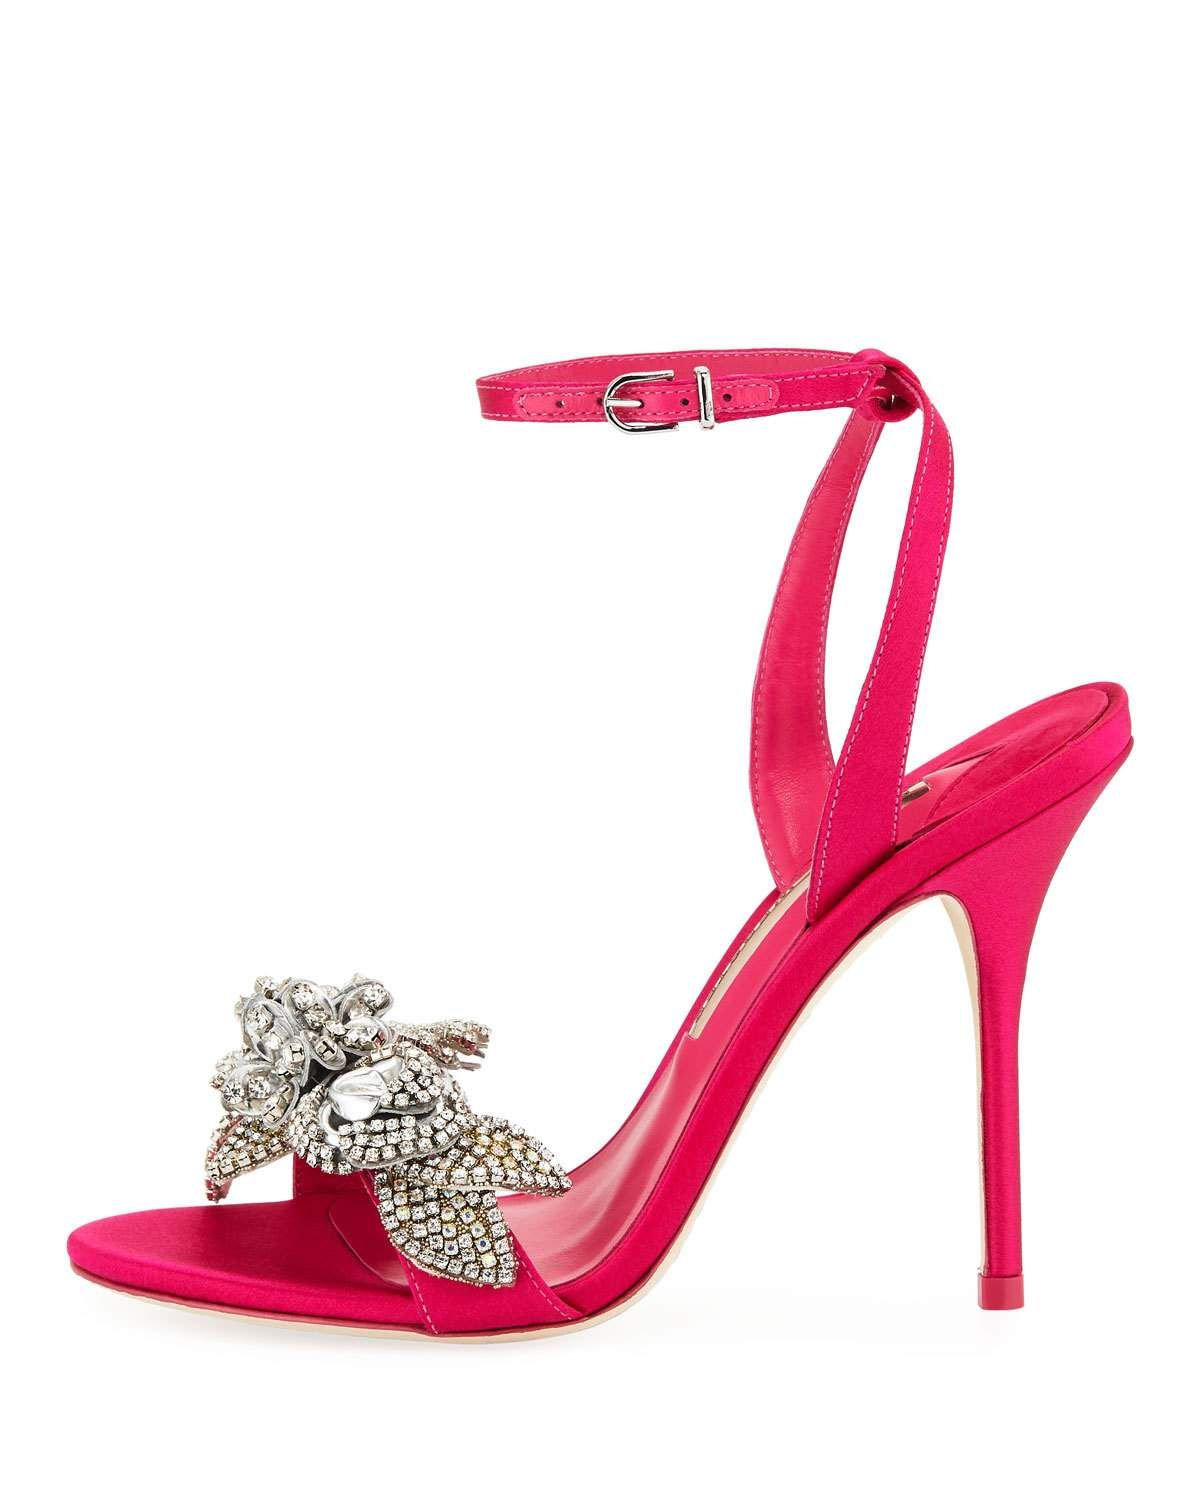 82d63d5583c Lilico Crystal Satin Sandals Bright Pink   Products   Sandals ...